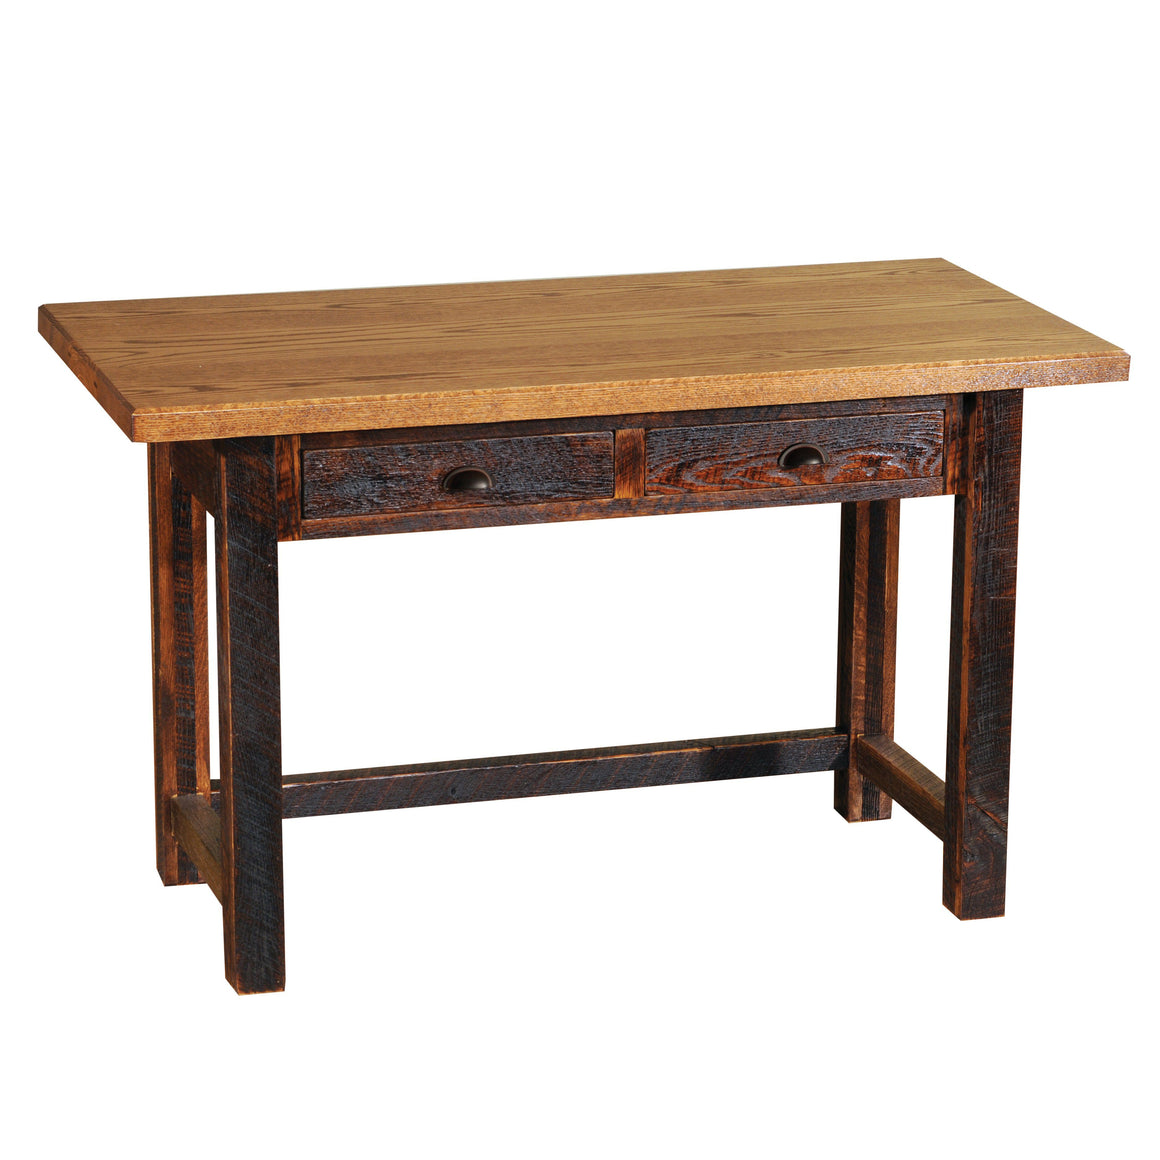 Barnwood Writing Desk with Two Drawers - Rustic Deco Incorporated